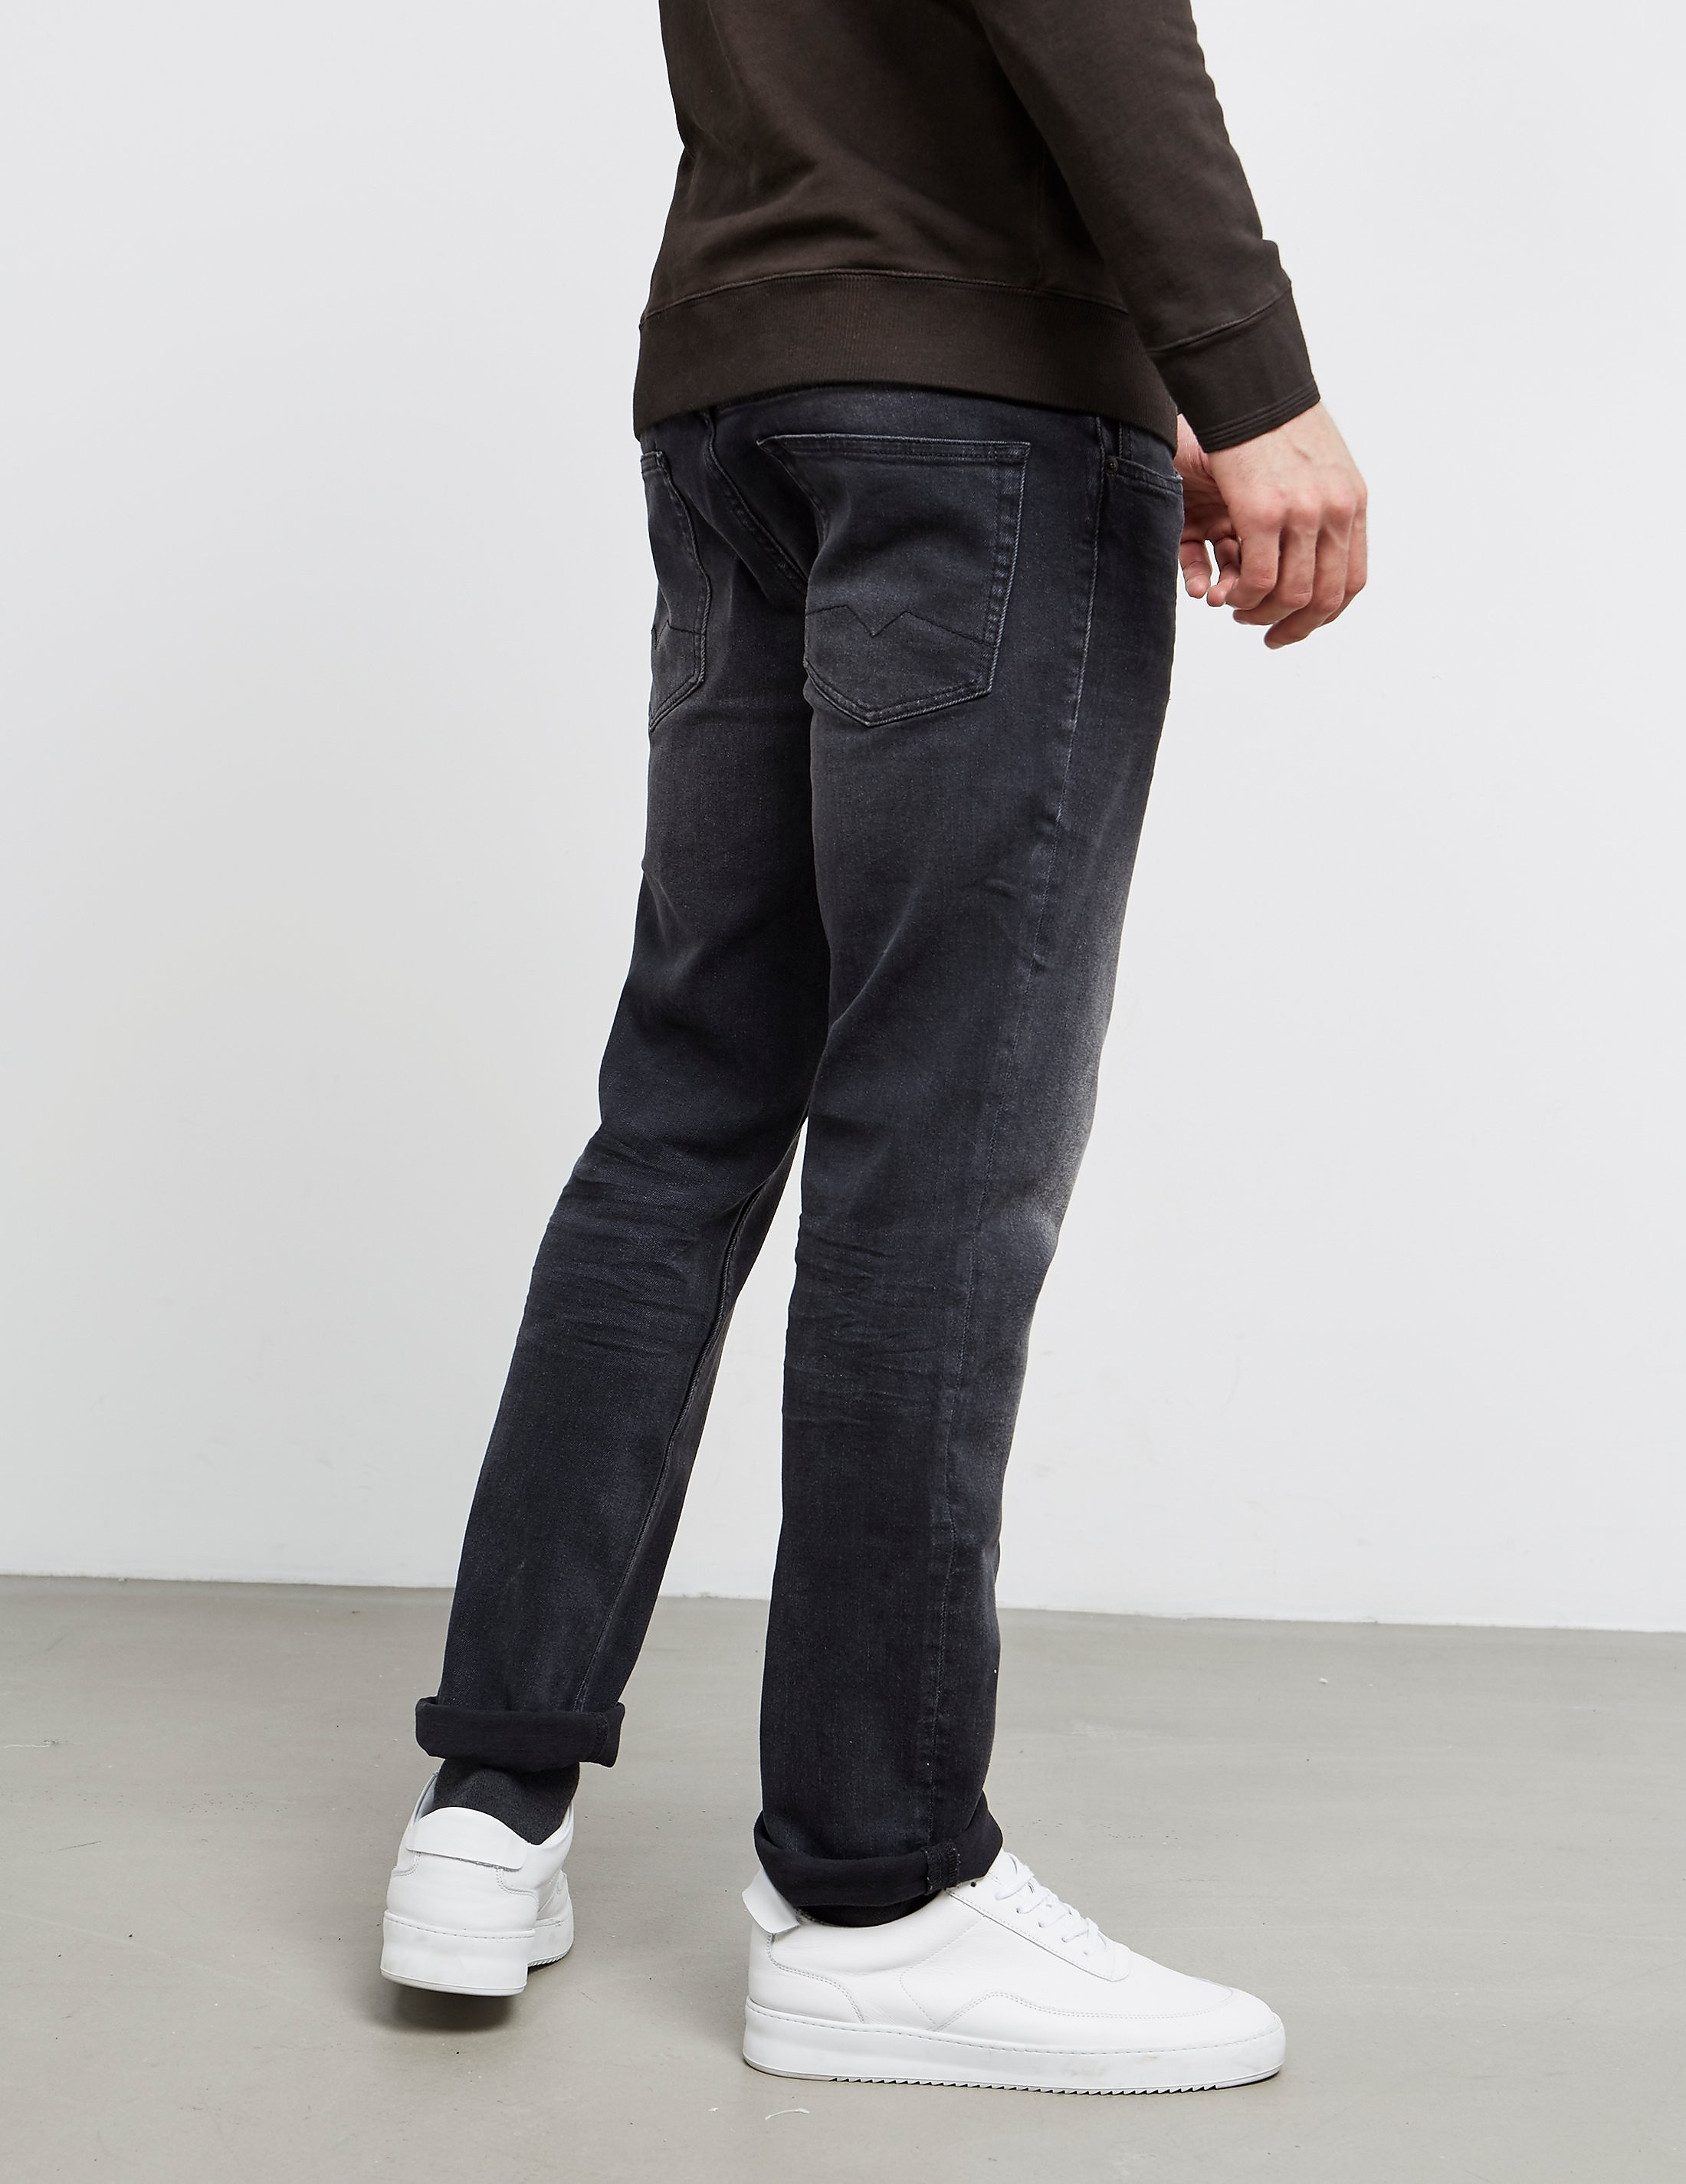 BOSS Orange 63 Helsinki Slim Jeans